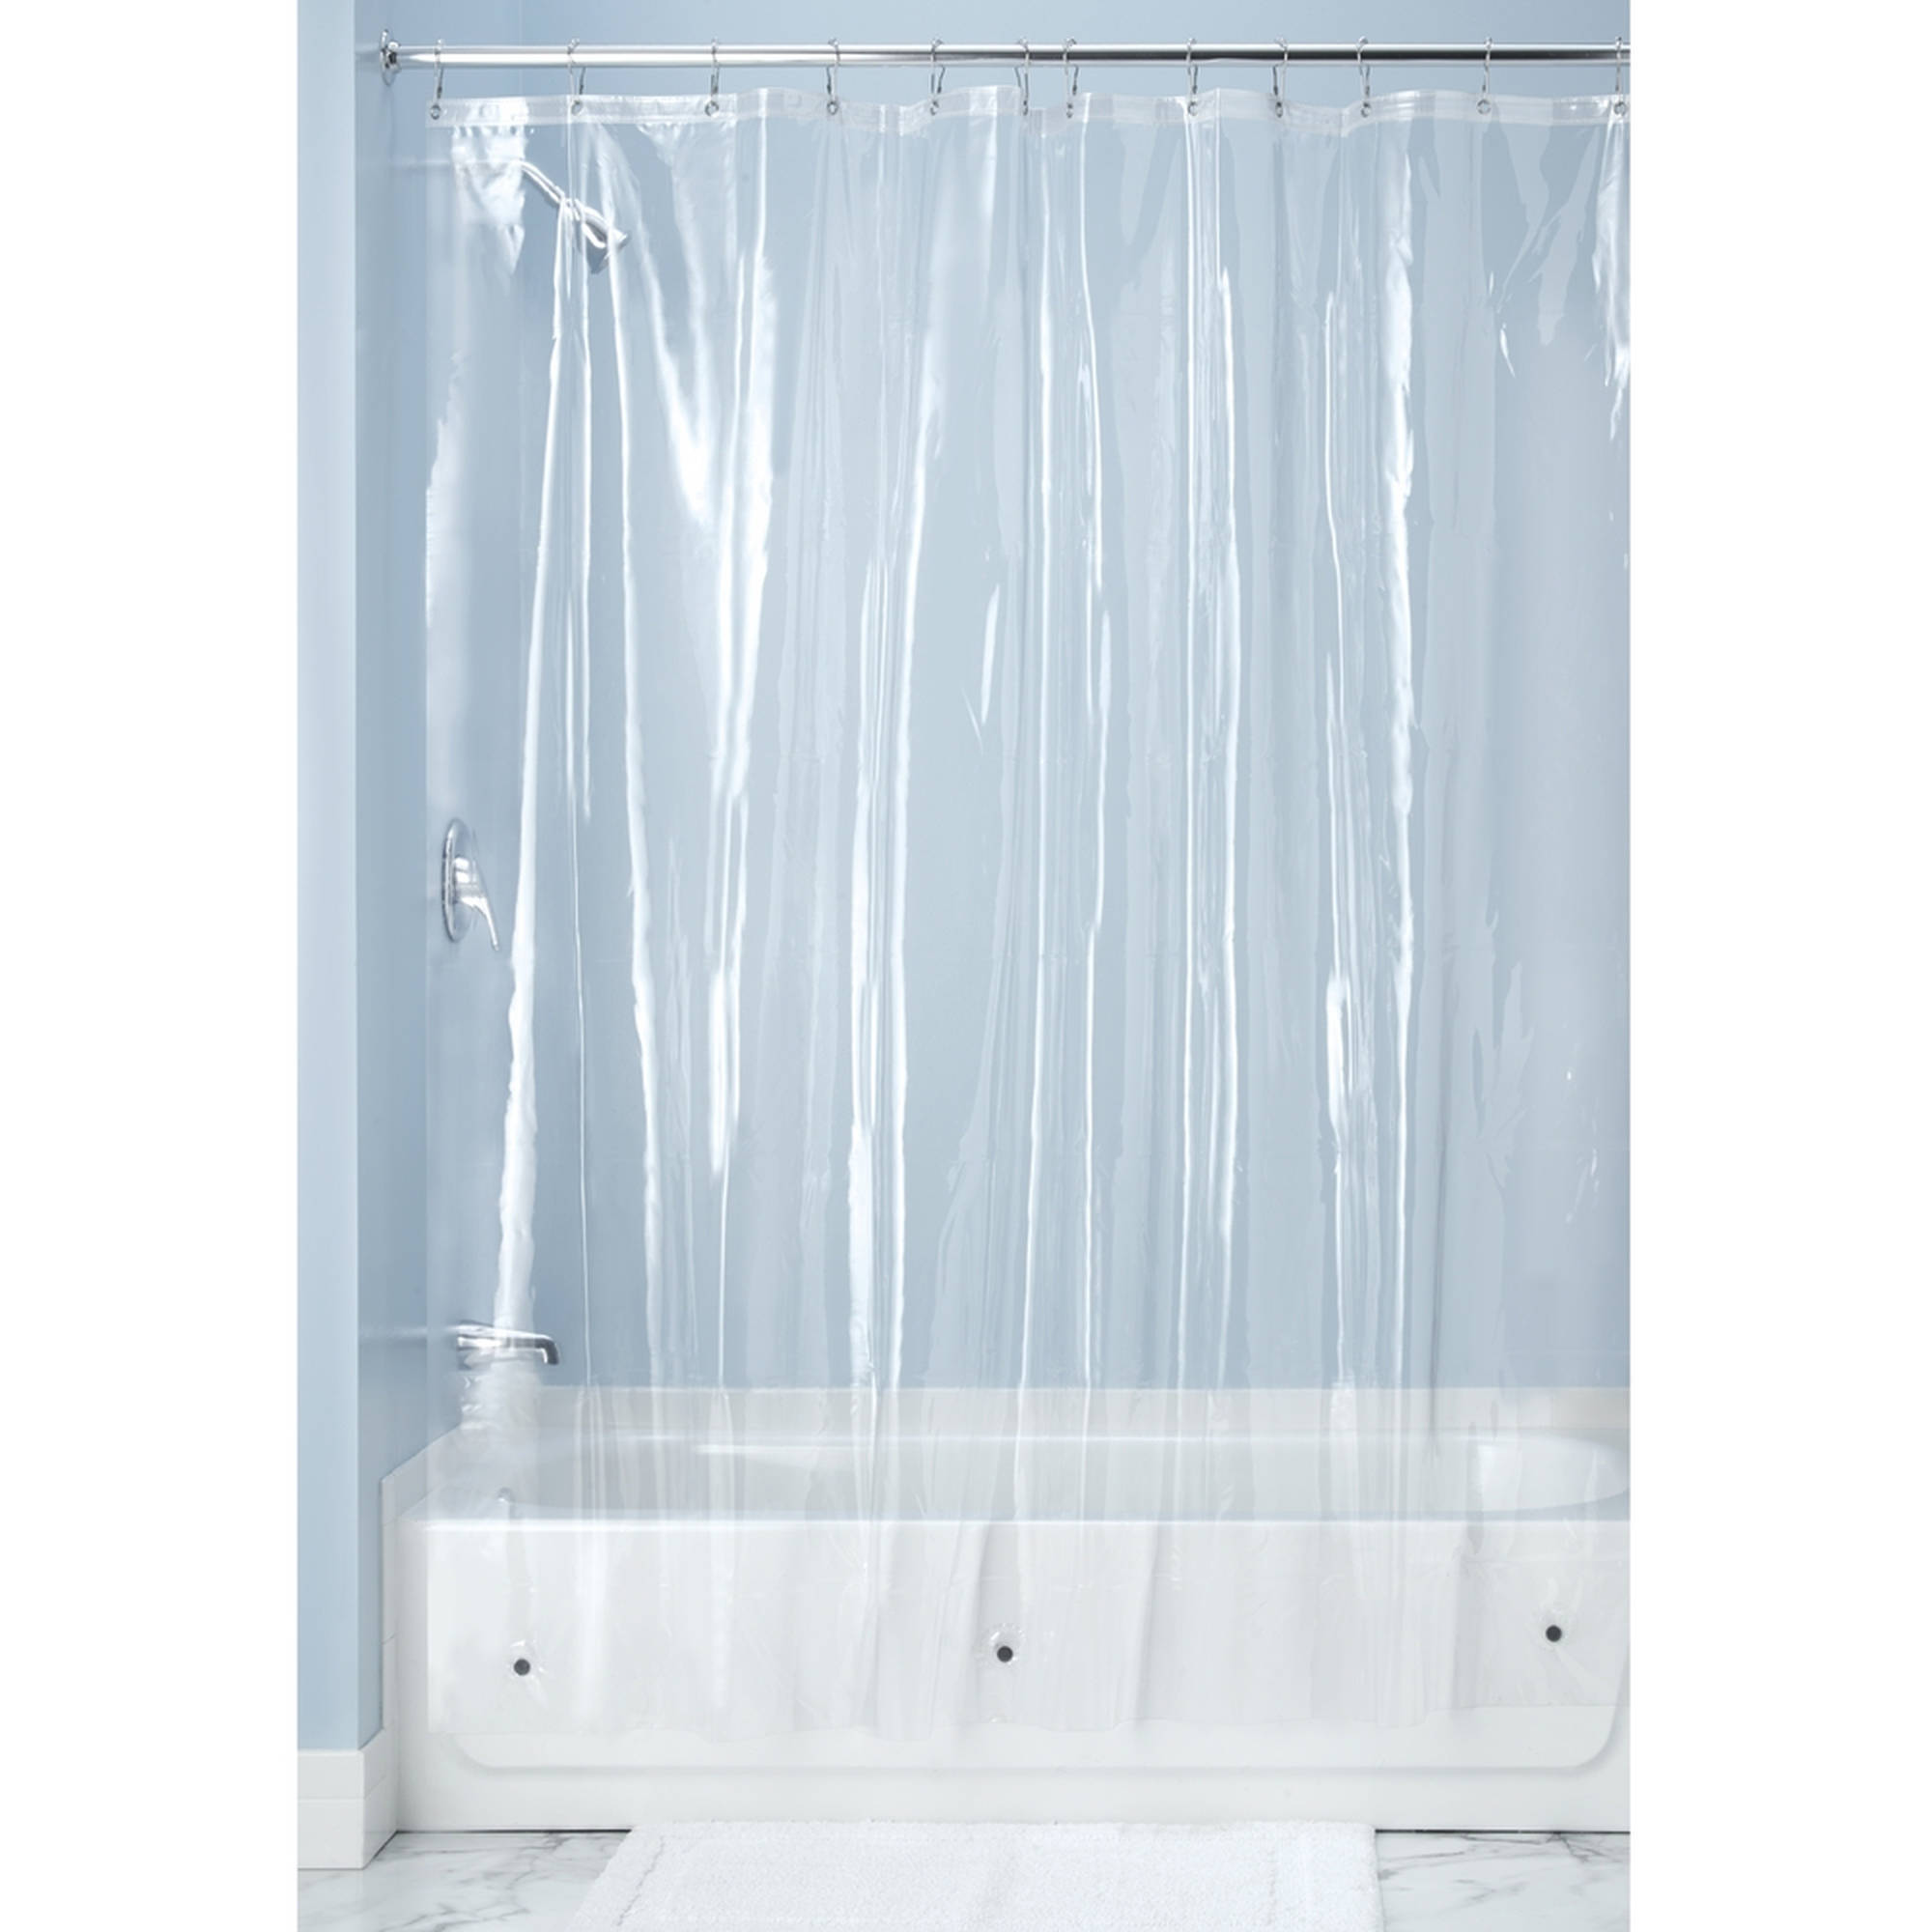 "InterDesign Antibacterial, Mold- and Mildew-Free 10 Gauge Vinyl Shower Curtain Liner, 72"" x 72"", Clear"